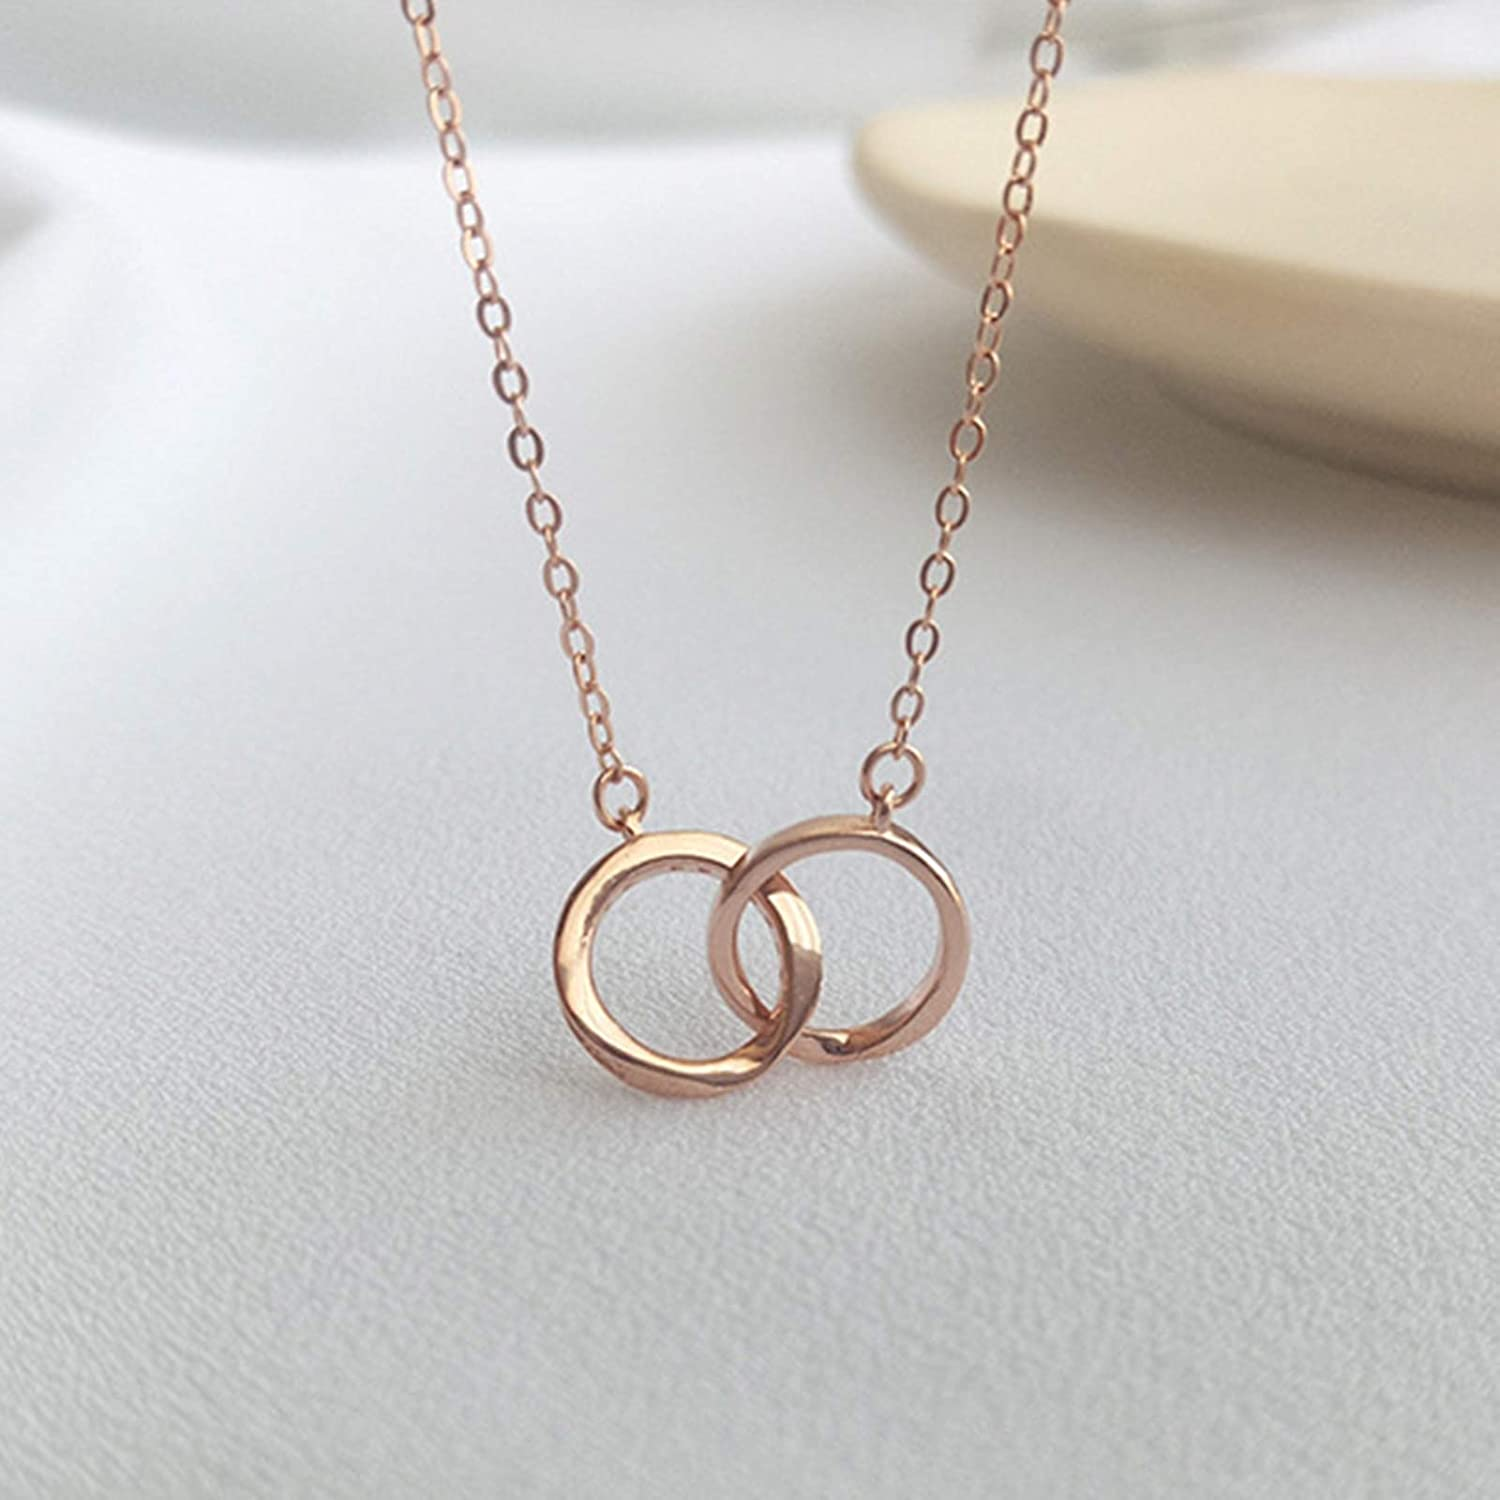 Aokarry Womens S925 Sterling Silver Necklace Interlocked Rings Pendant Necklaces for Women Rose Gold